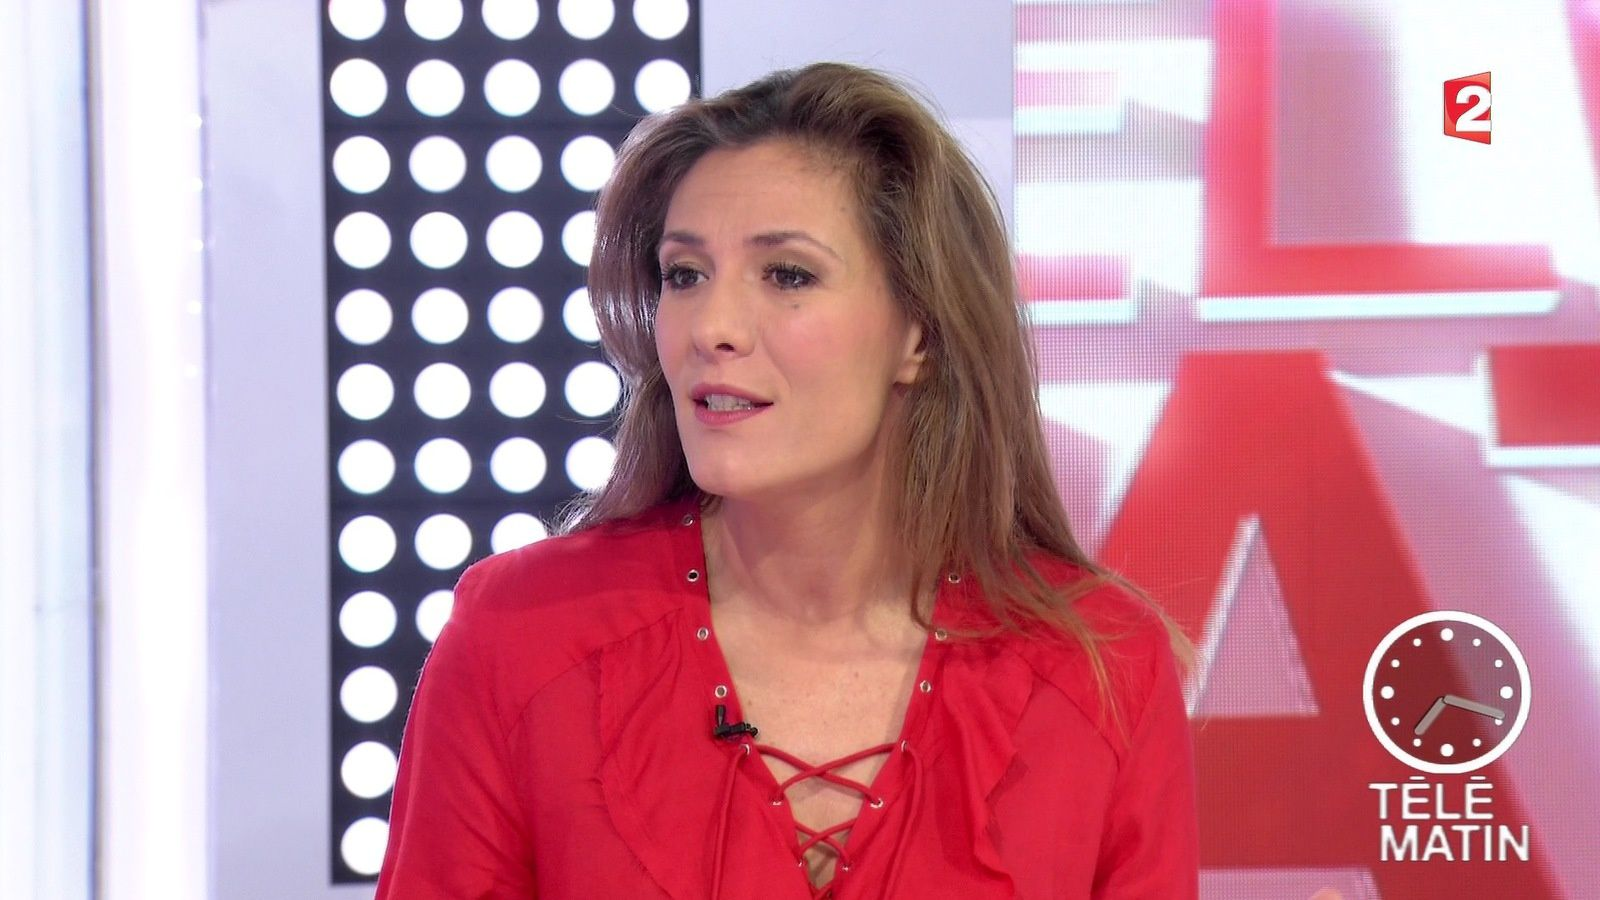 marie mamgioglou dans telematin le 2016 03 25 sur france 2. Black Bedroom Furniture Sets. Home Design Ideas